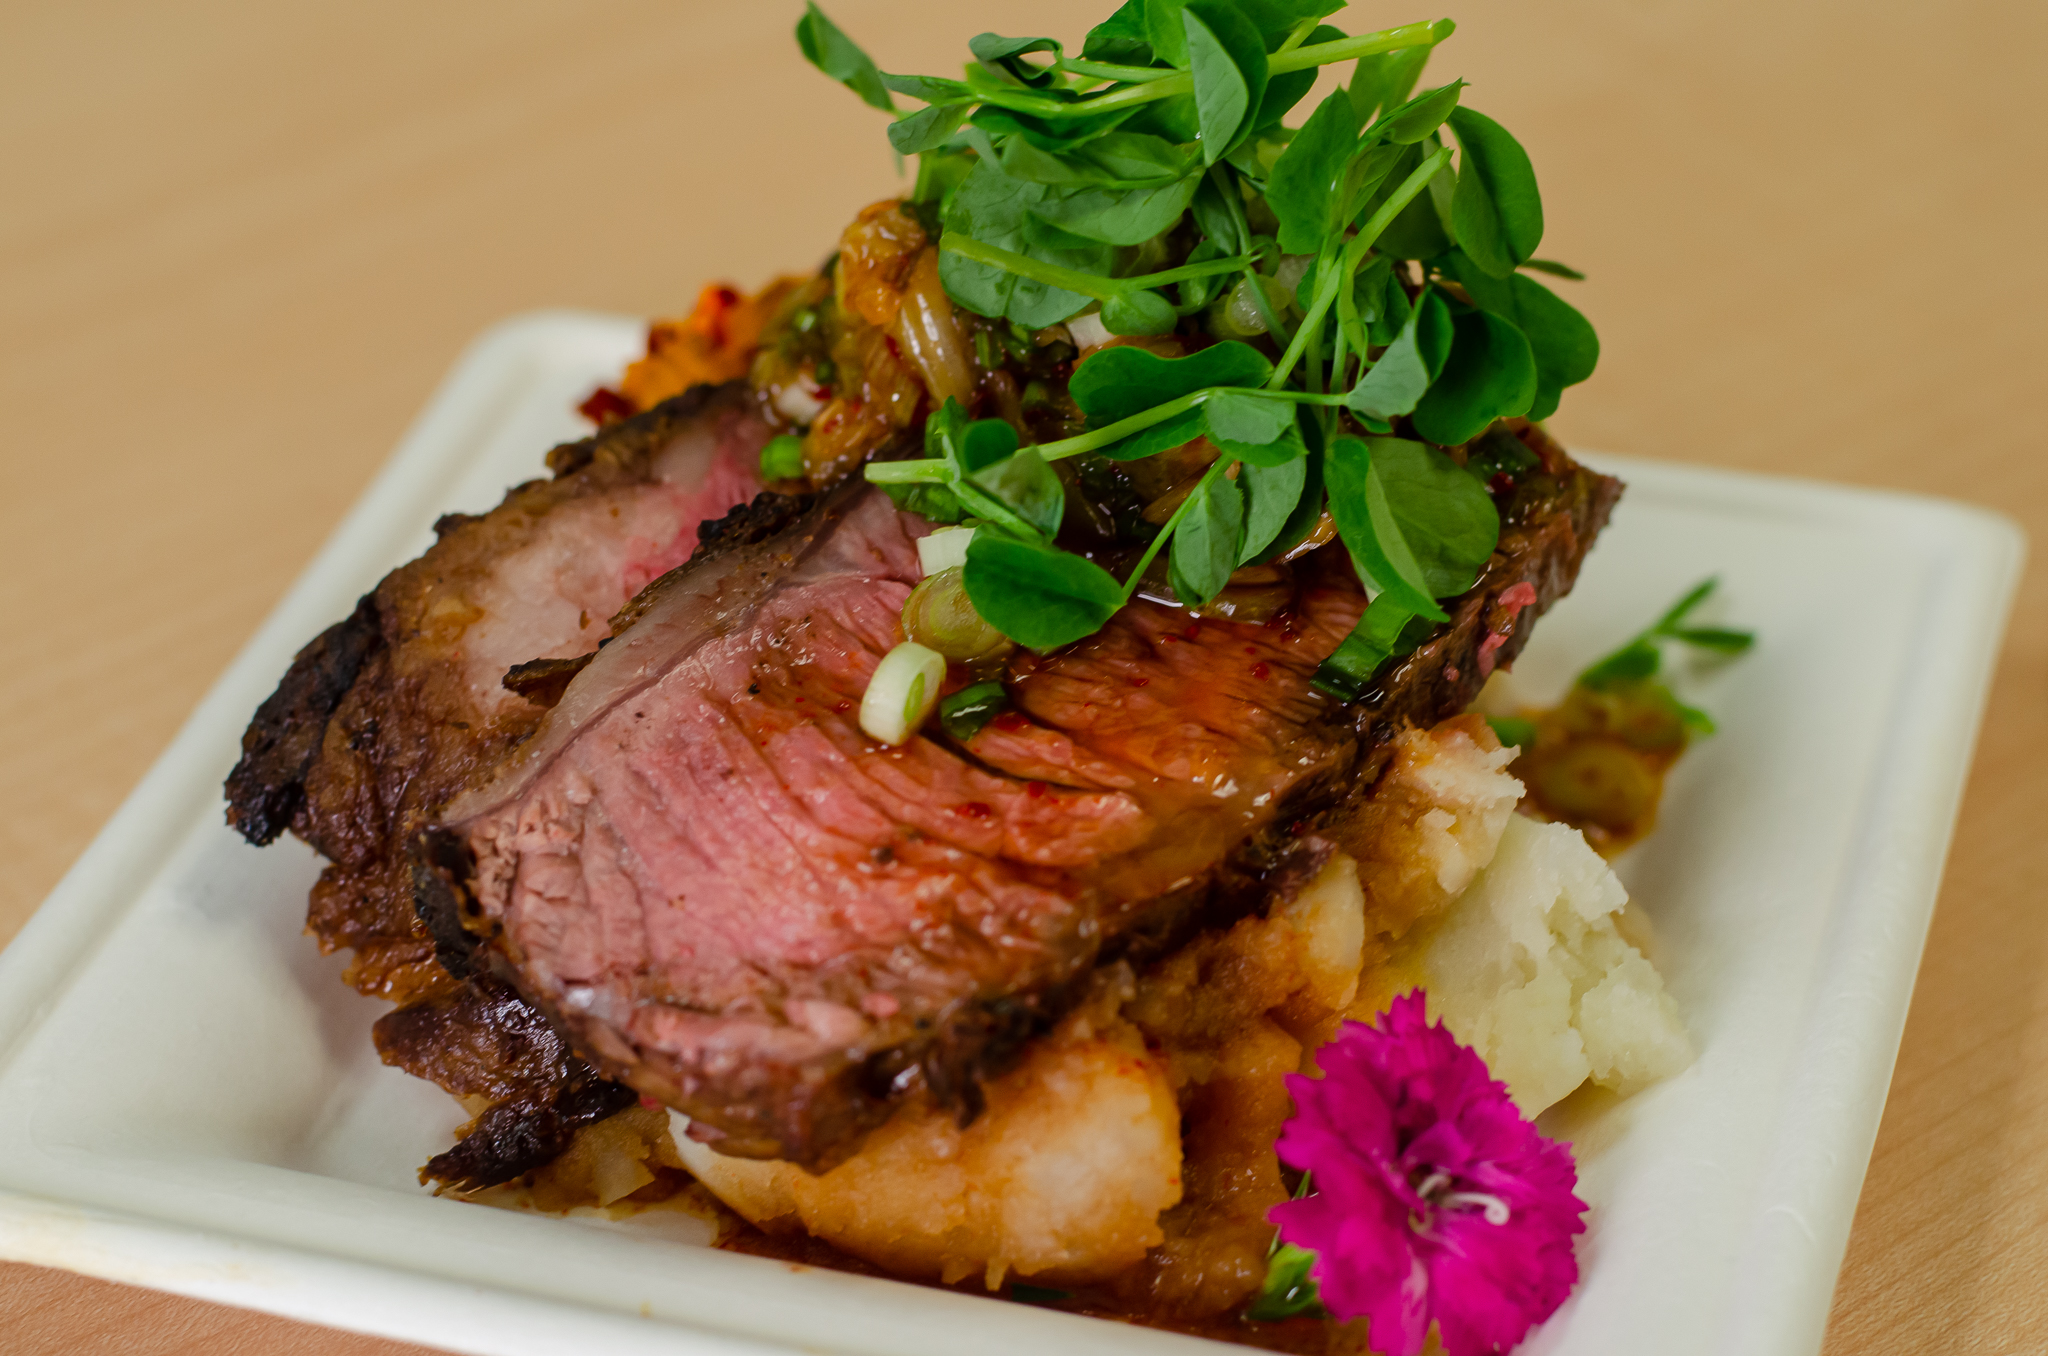 Grilled Beef Short Ribs from Chef Anthony Dalupan in Windsor, Ontario.